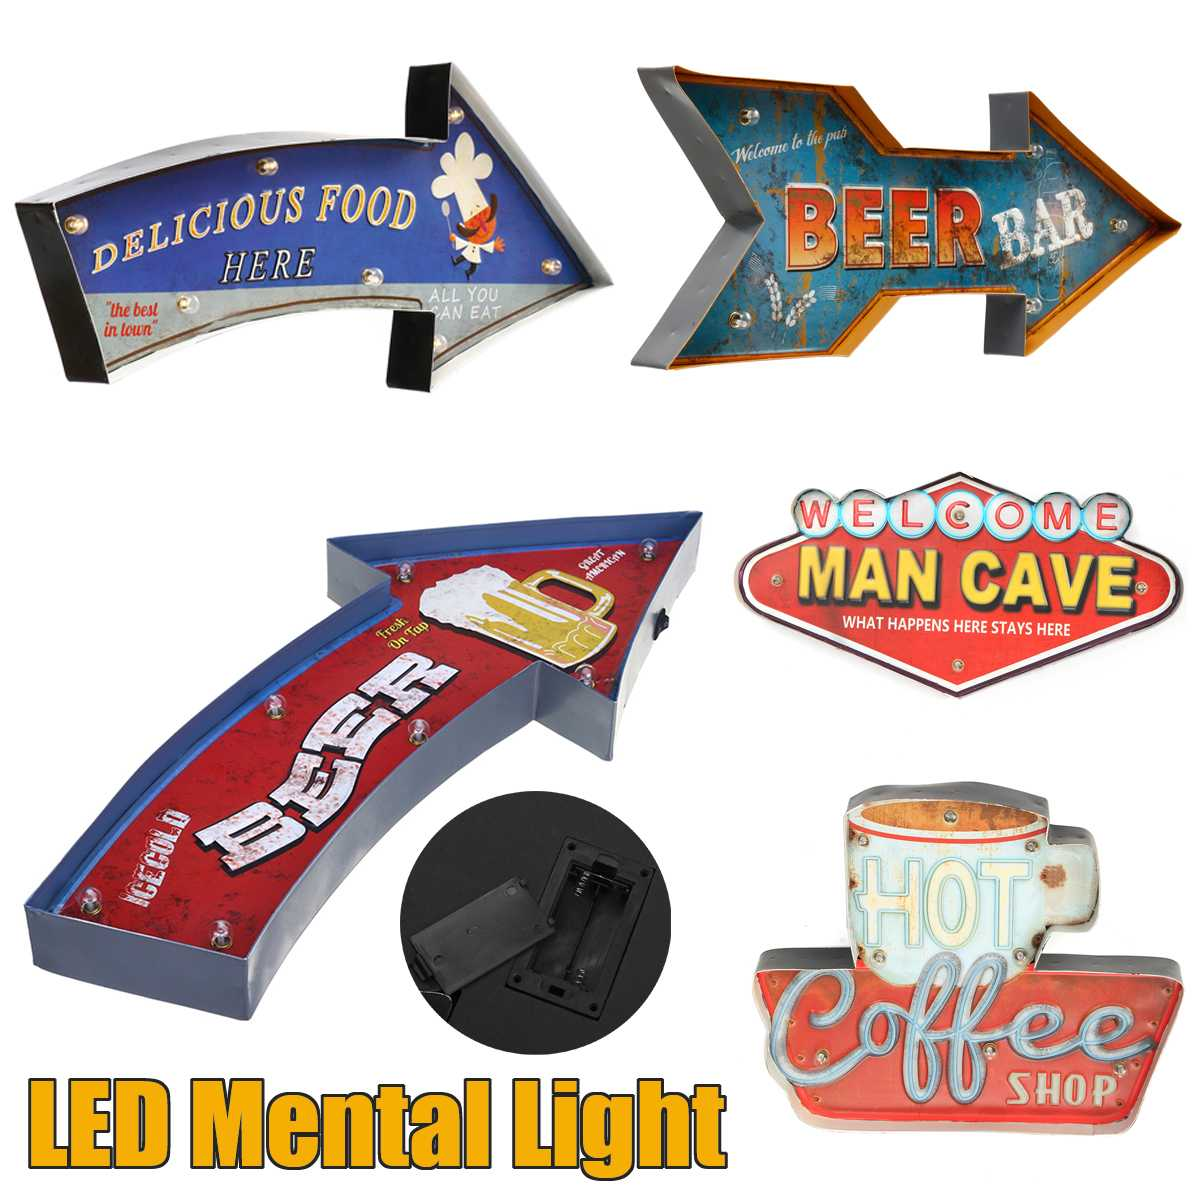 5 Style Vintage Neon Sign Painting 7 Lights Beer Arrow-style Wall Decoration LED Mental Lamp Bar Game Room Wall Hangings Decor